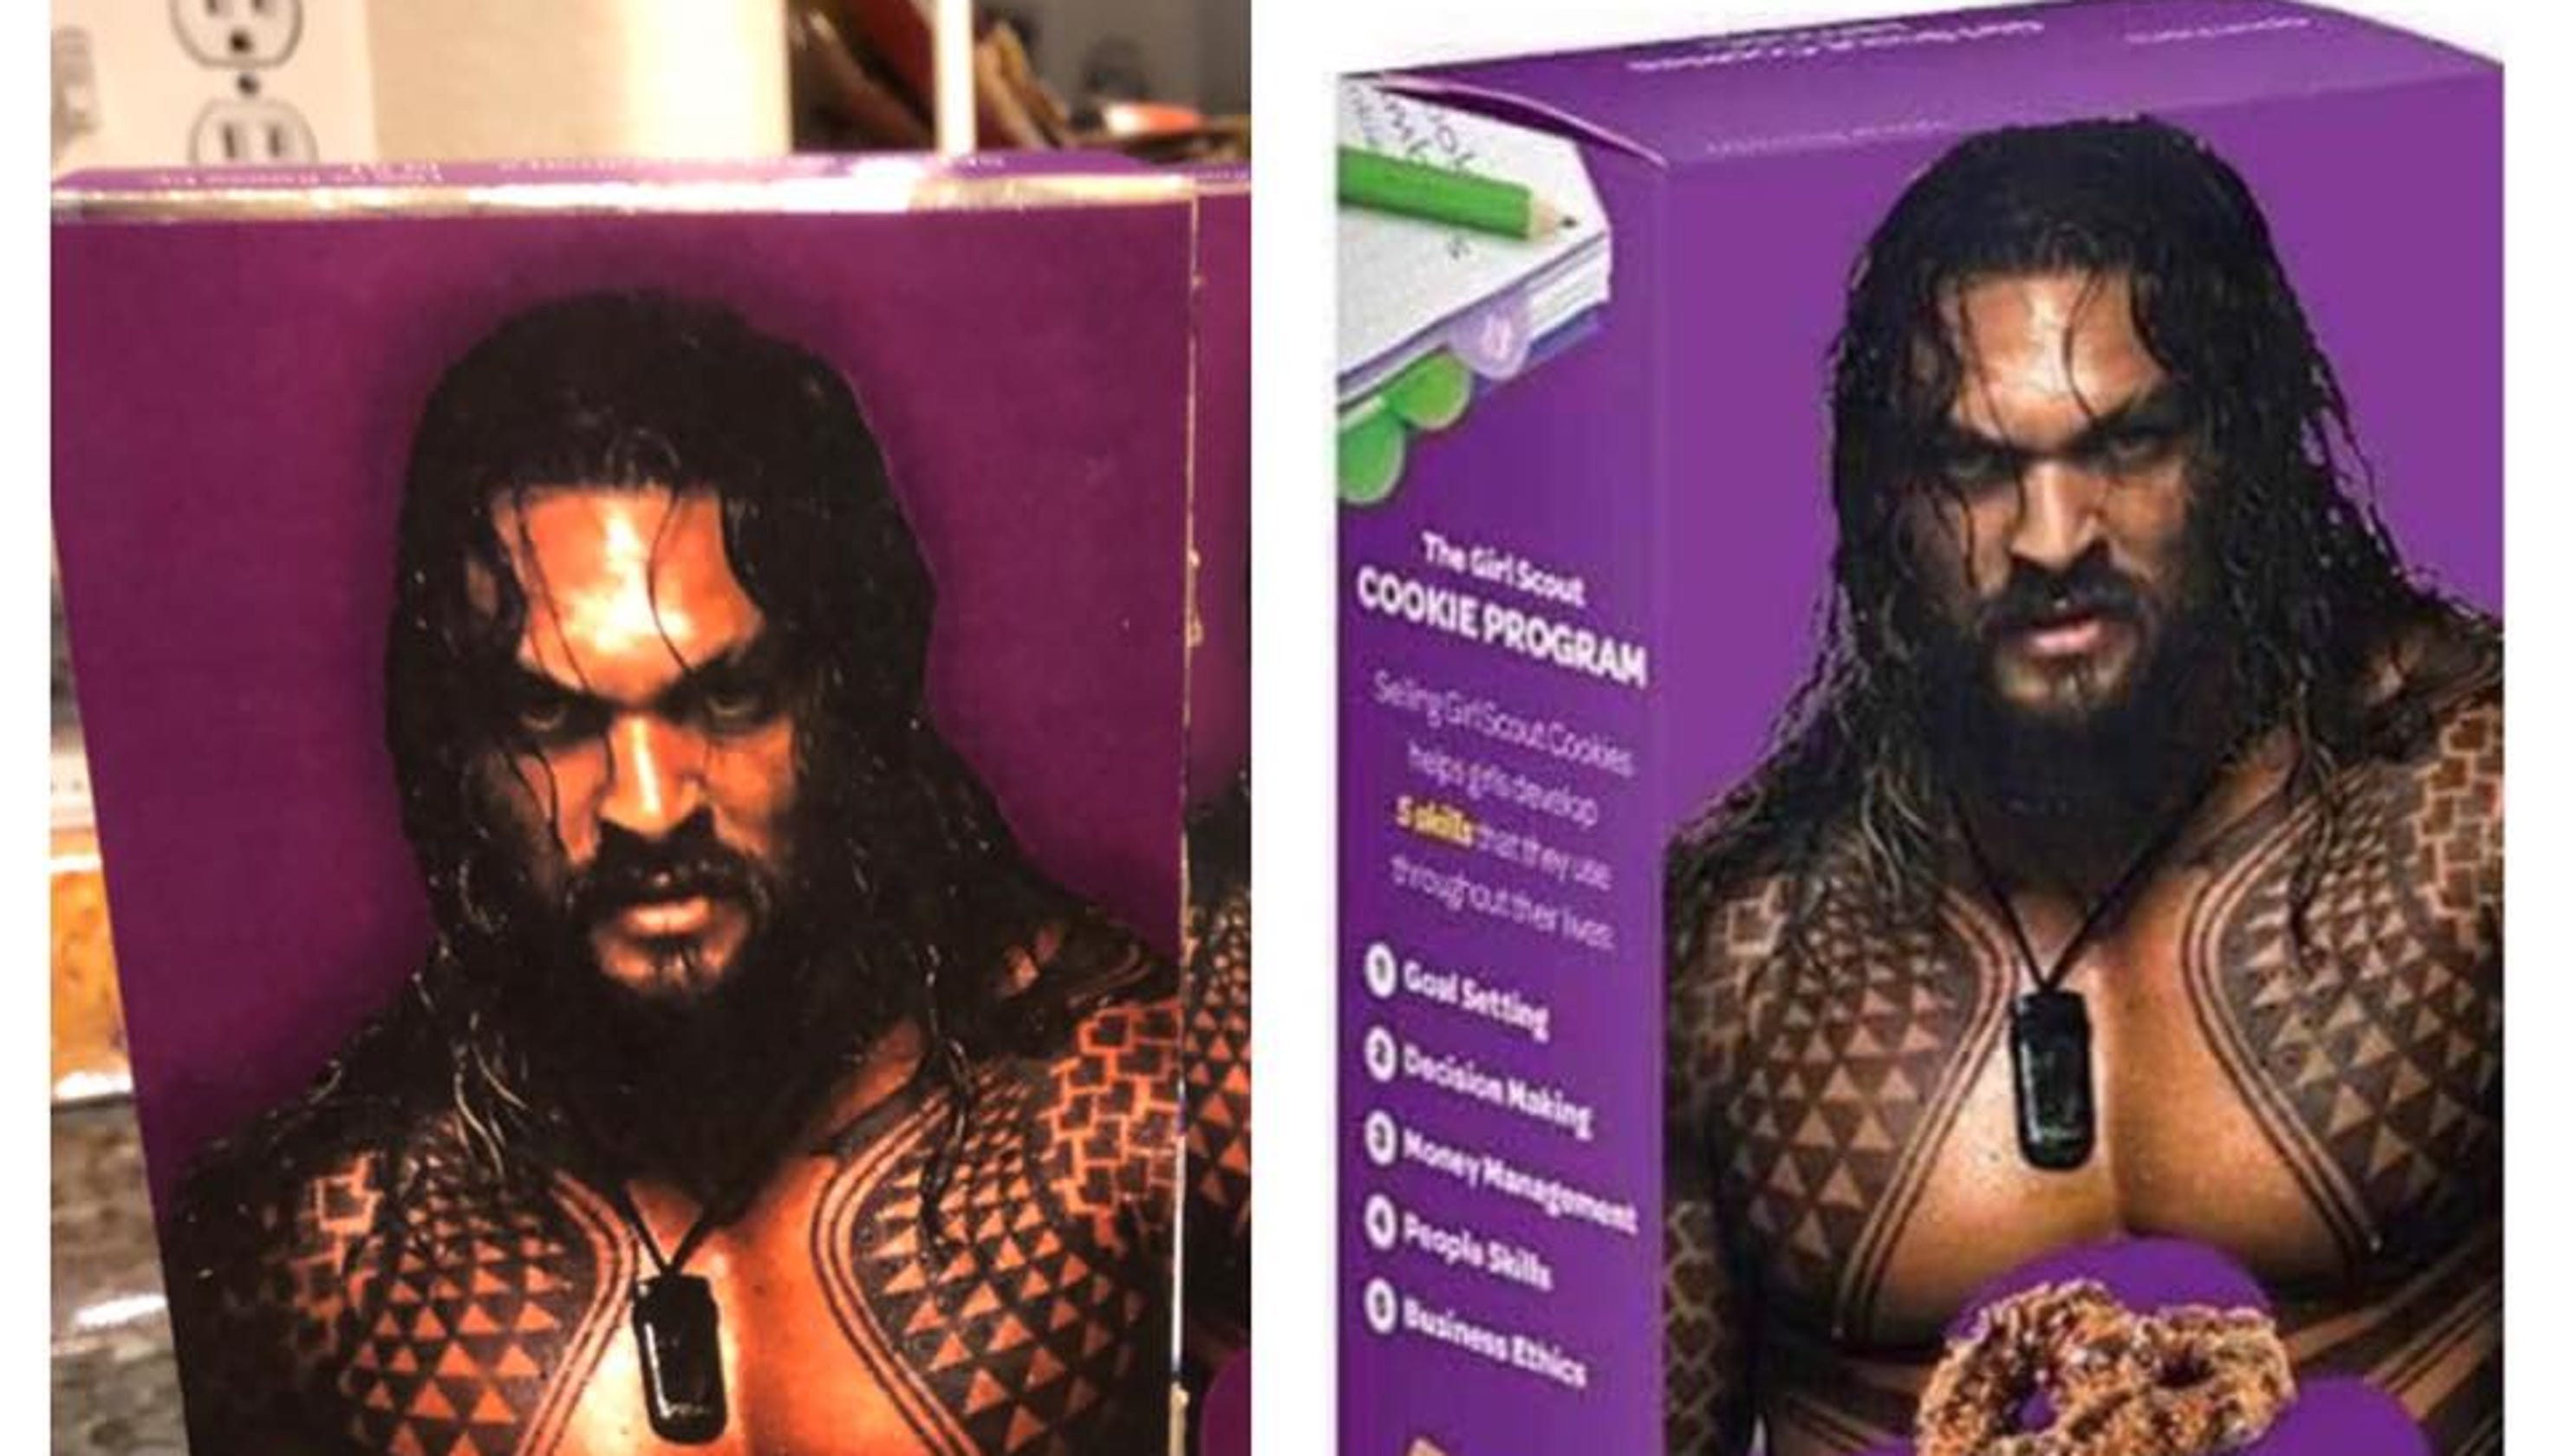 Momoa Samoas Girl Scout Markets Cookies With Shirtless Image Of